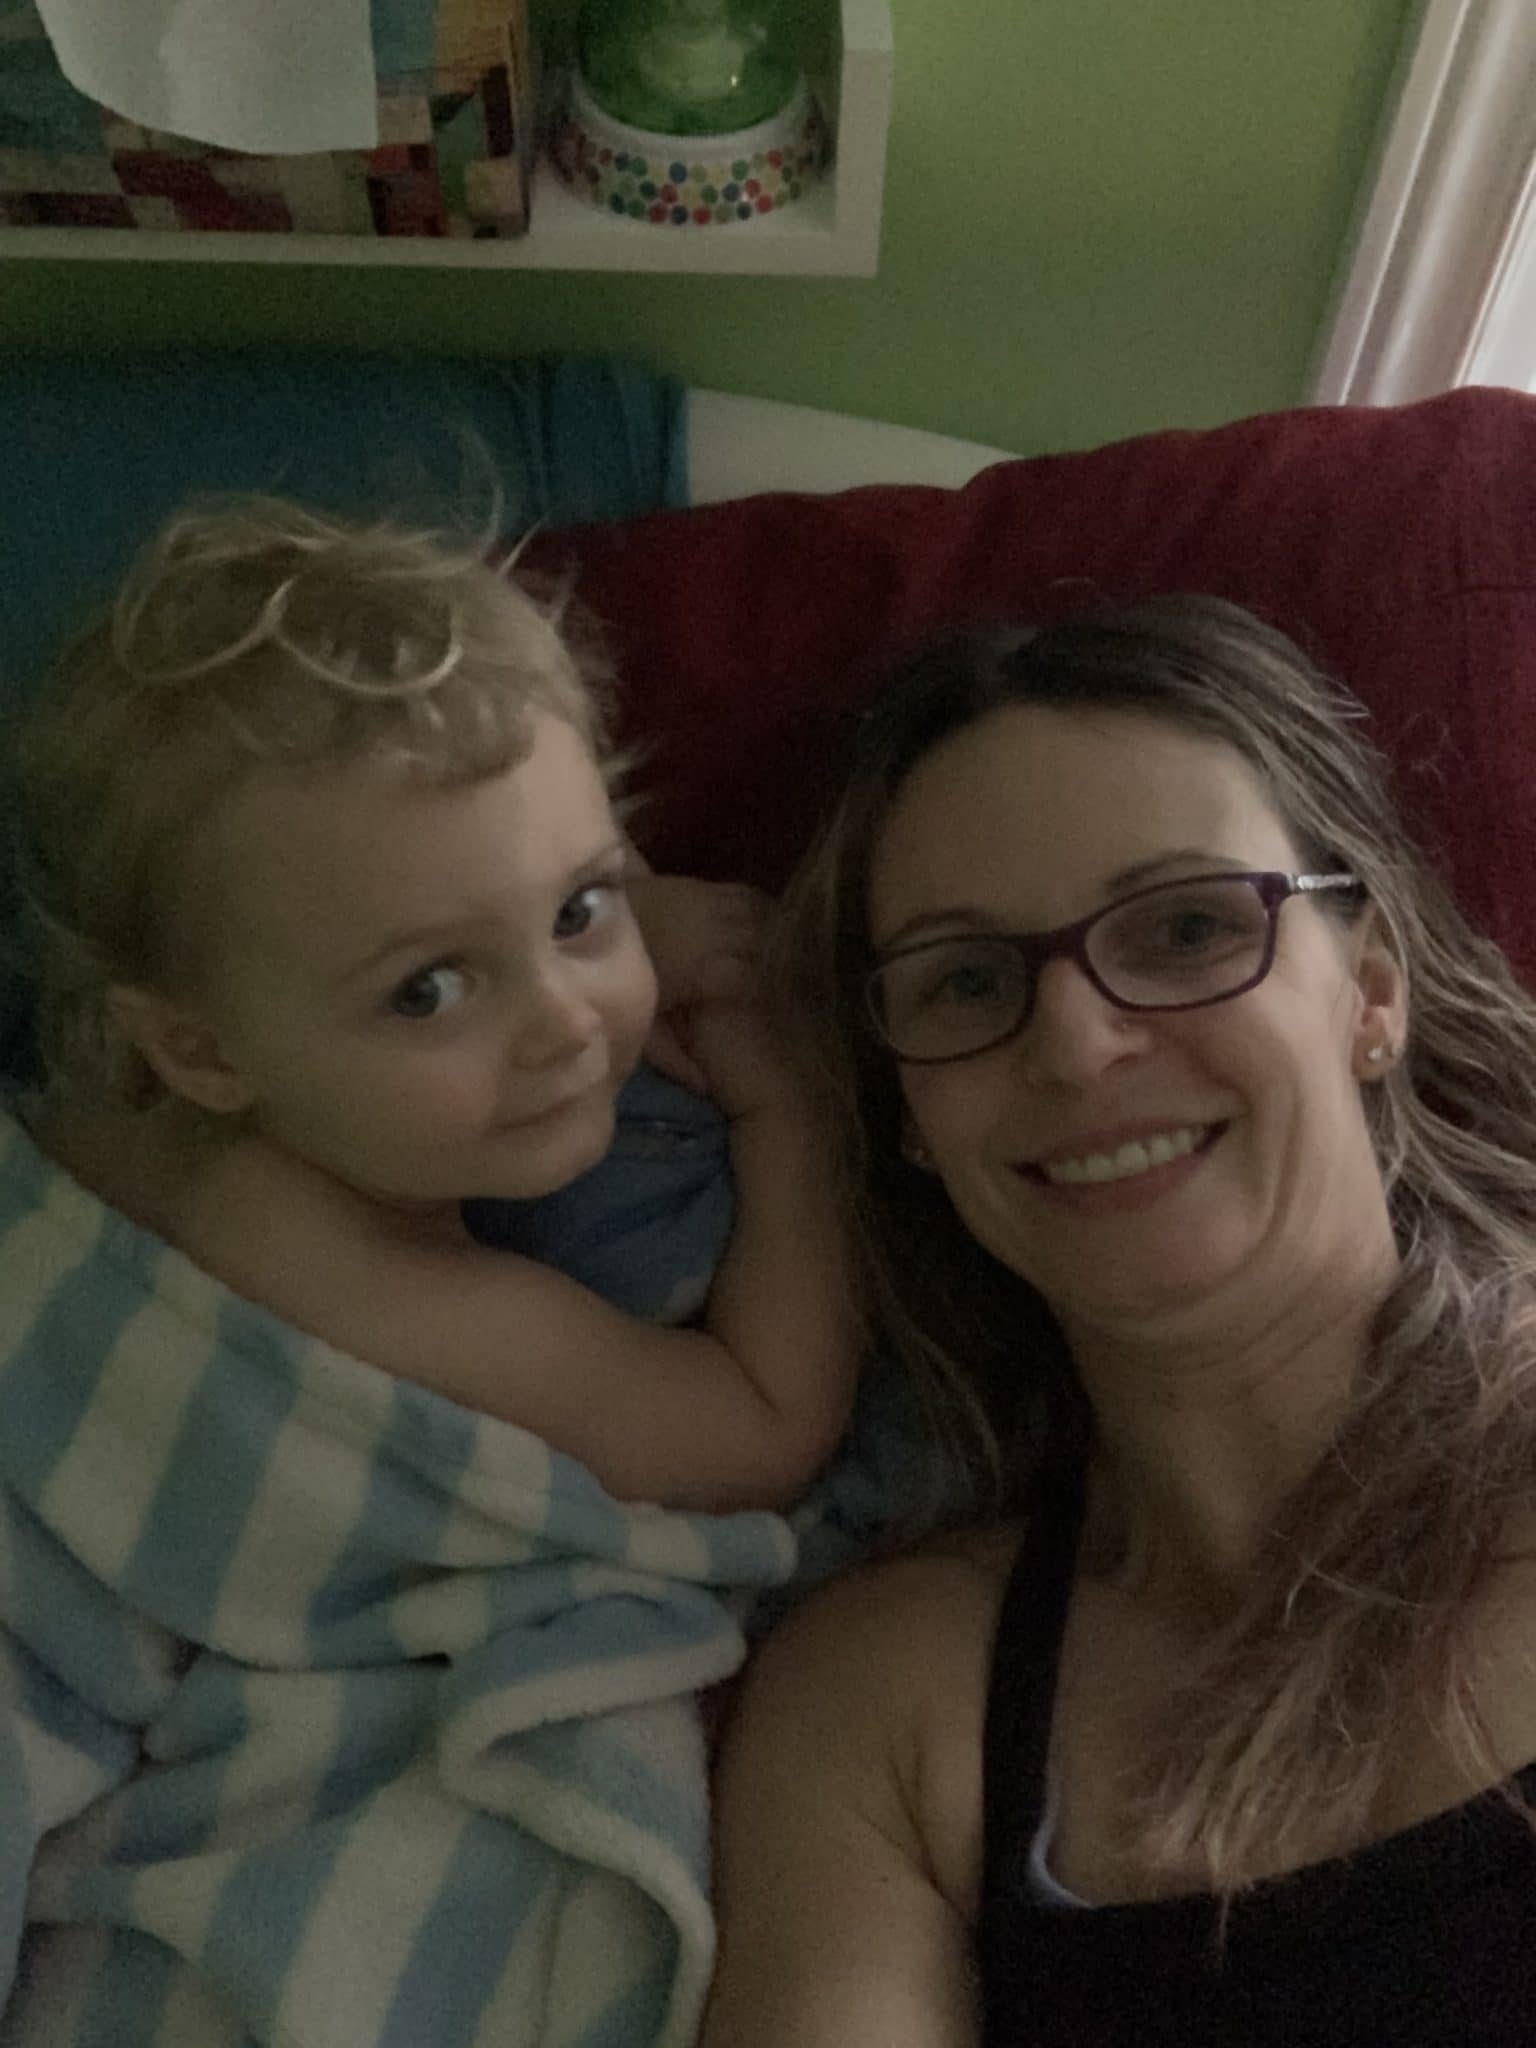 Mom and toddler snuggling together in bed